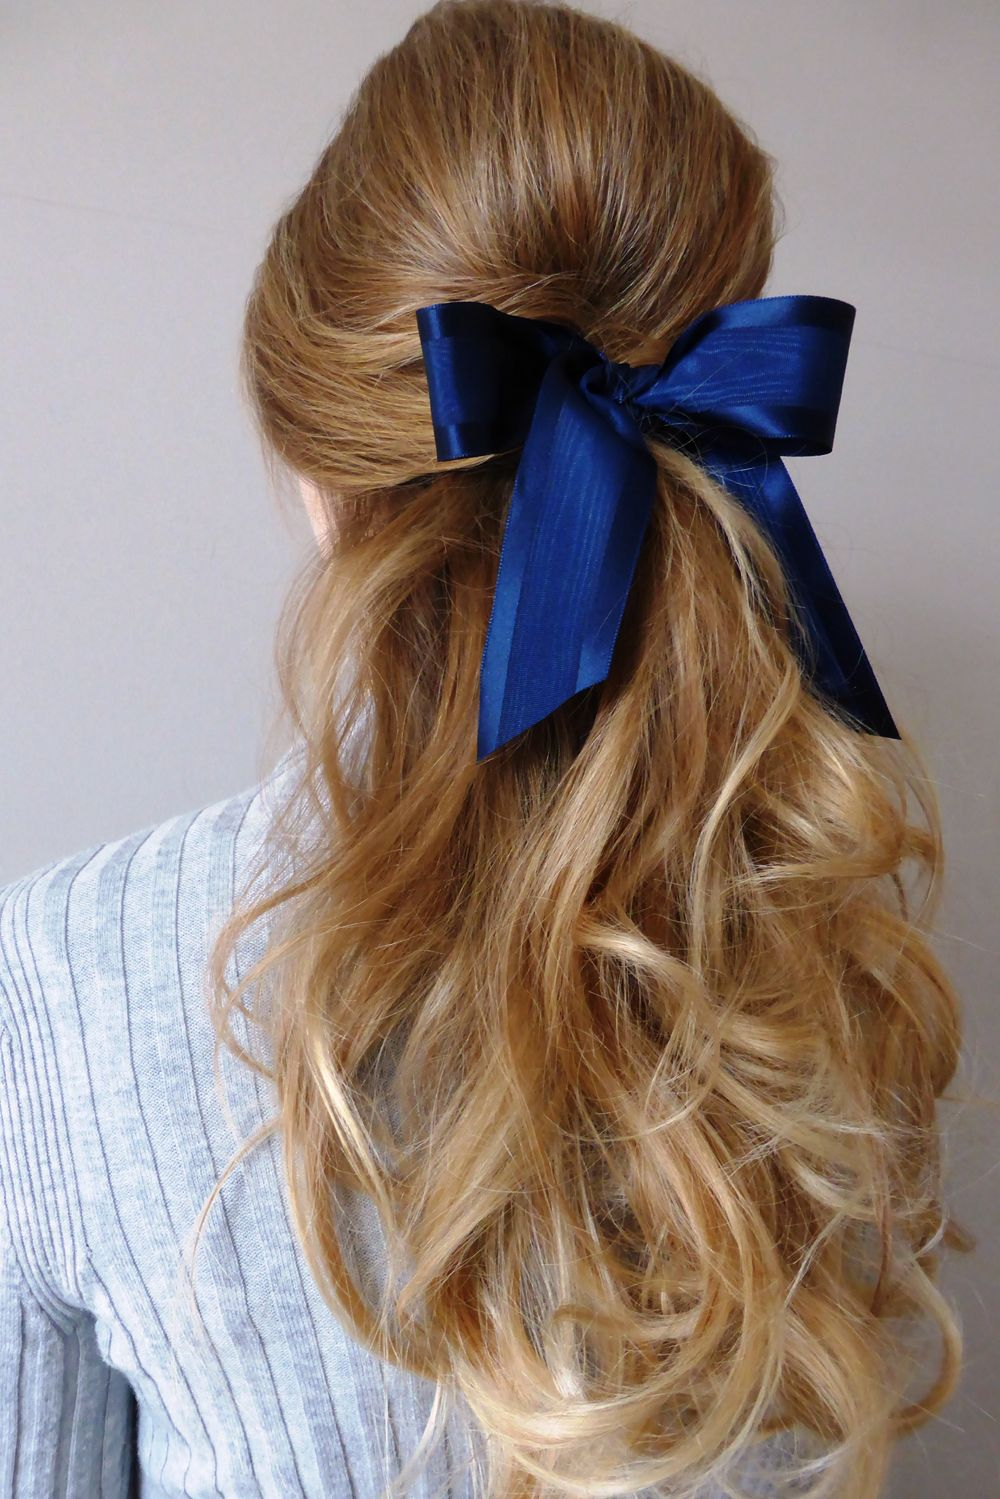 Master Day To Night Dressing With This Elegant Bridget Bardot Inspired Look Our Moire Satin Ribbon Looks Lovely Girly Hairstyles Bardot Hair Hair Ribbons